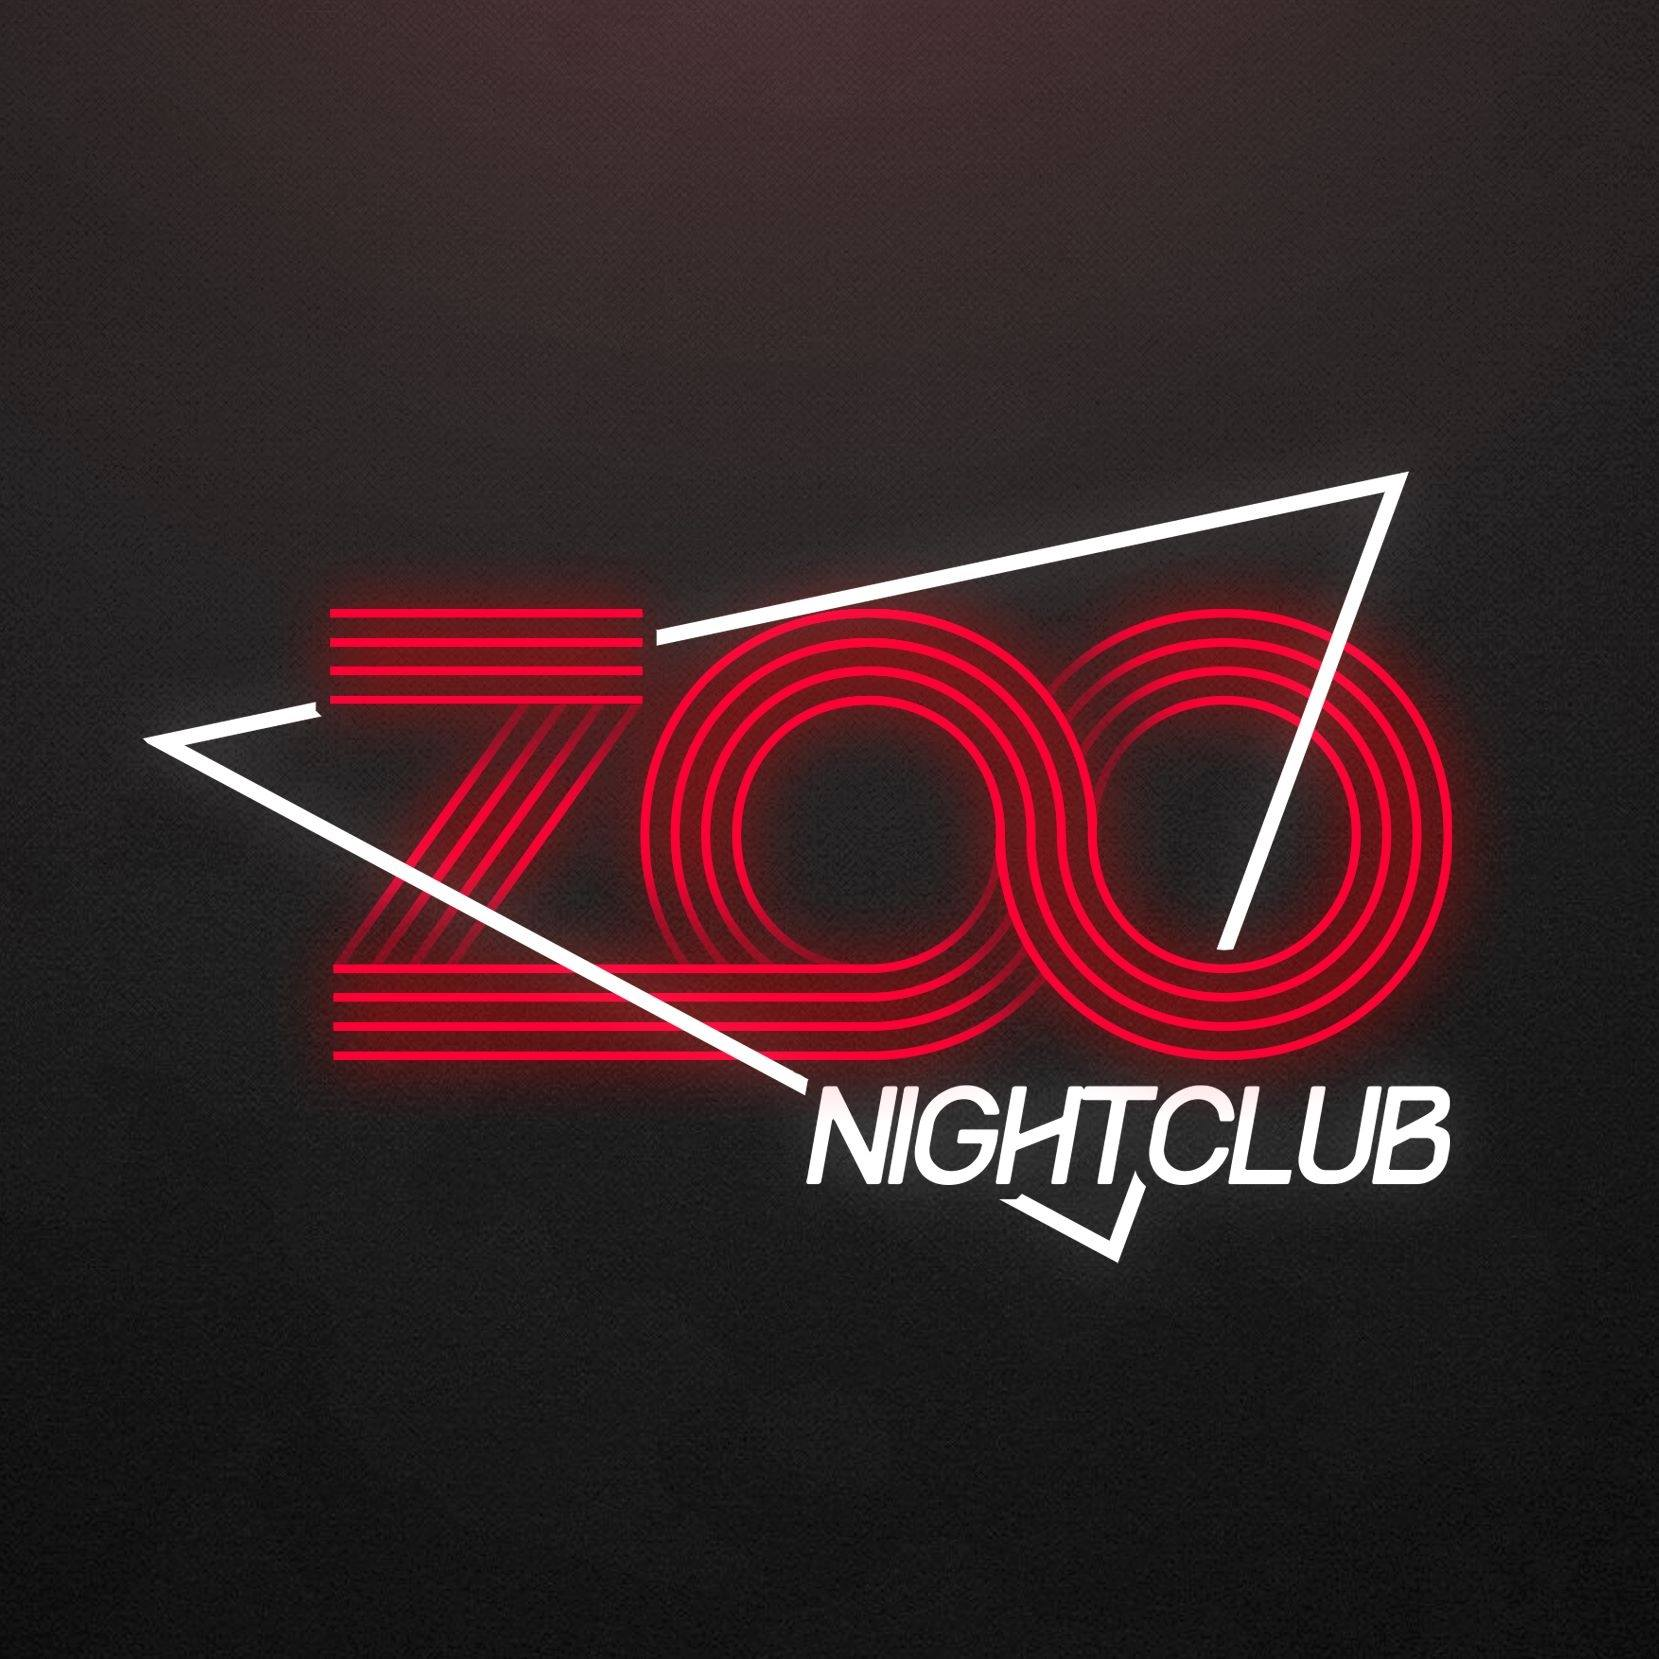 zoo nightclub logo